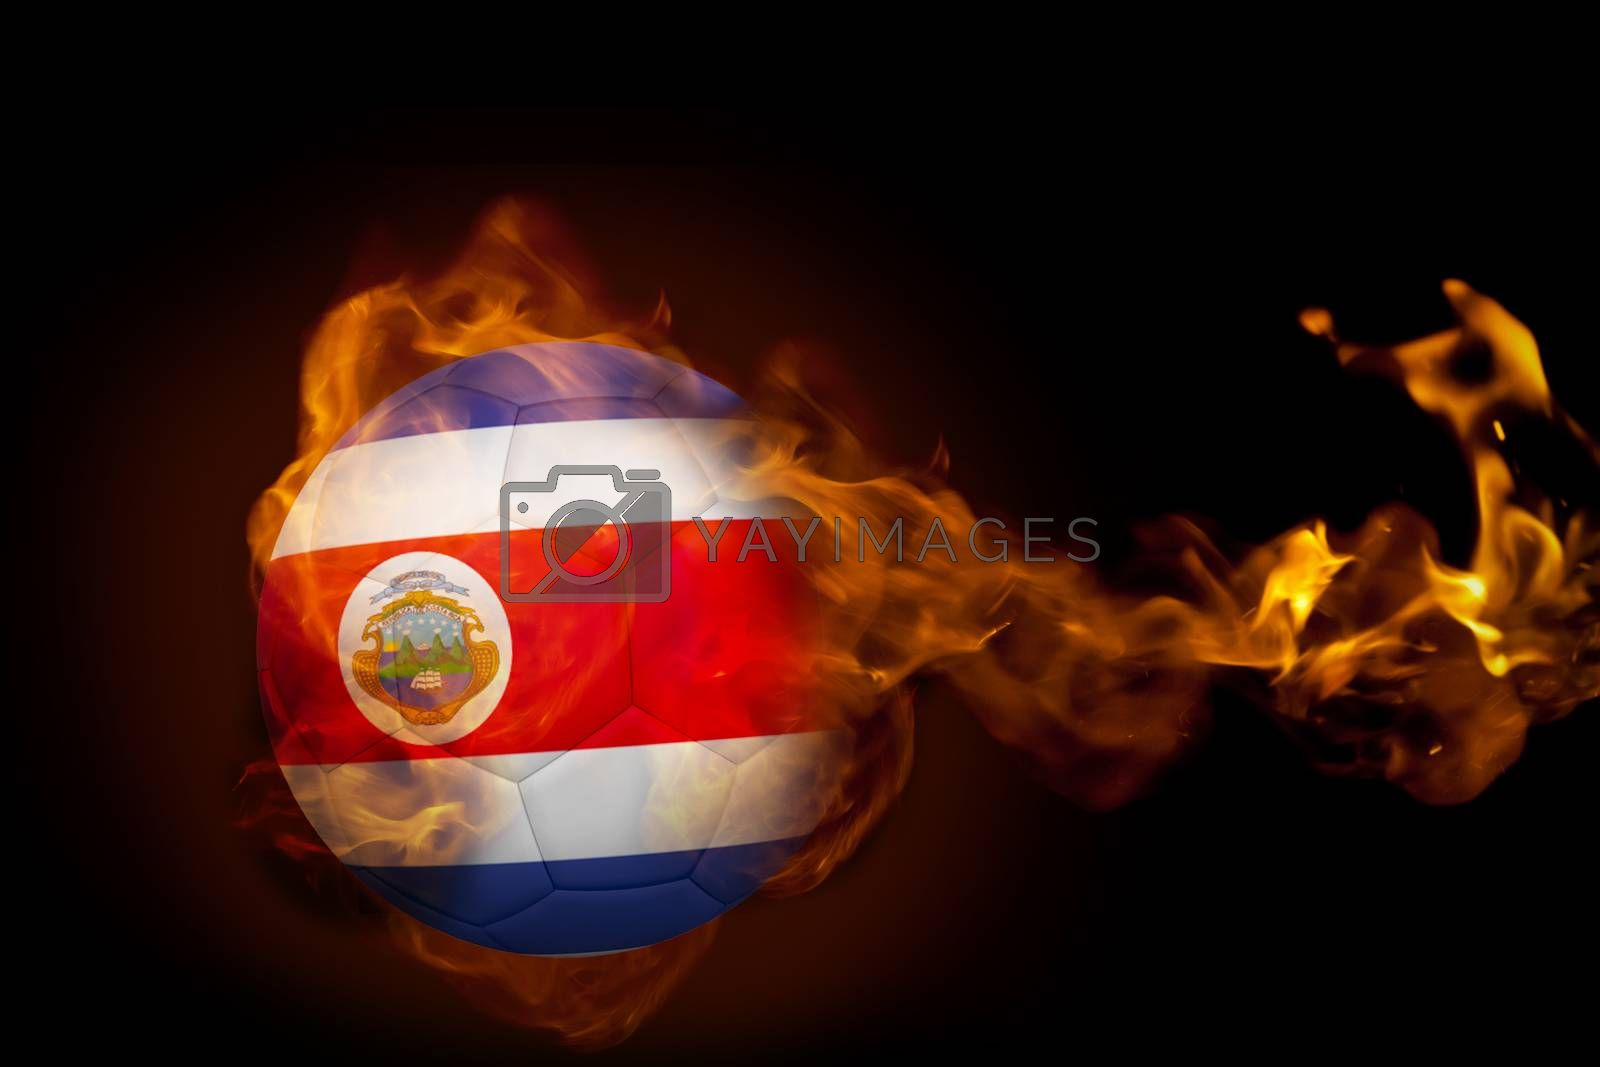 Fire surrounding costa rica ball by Wavebreakmedia